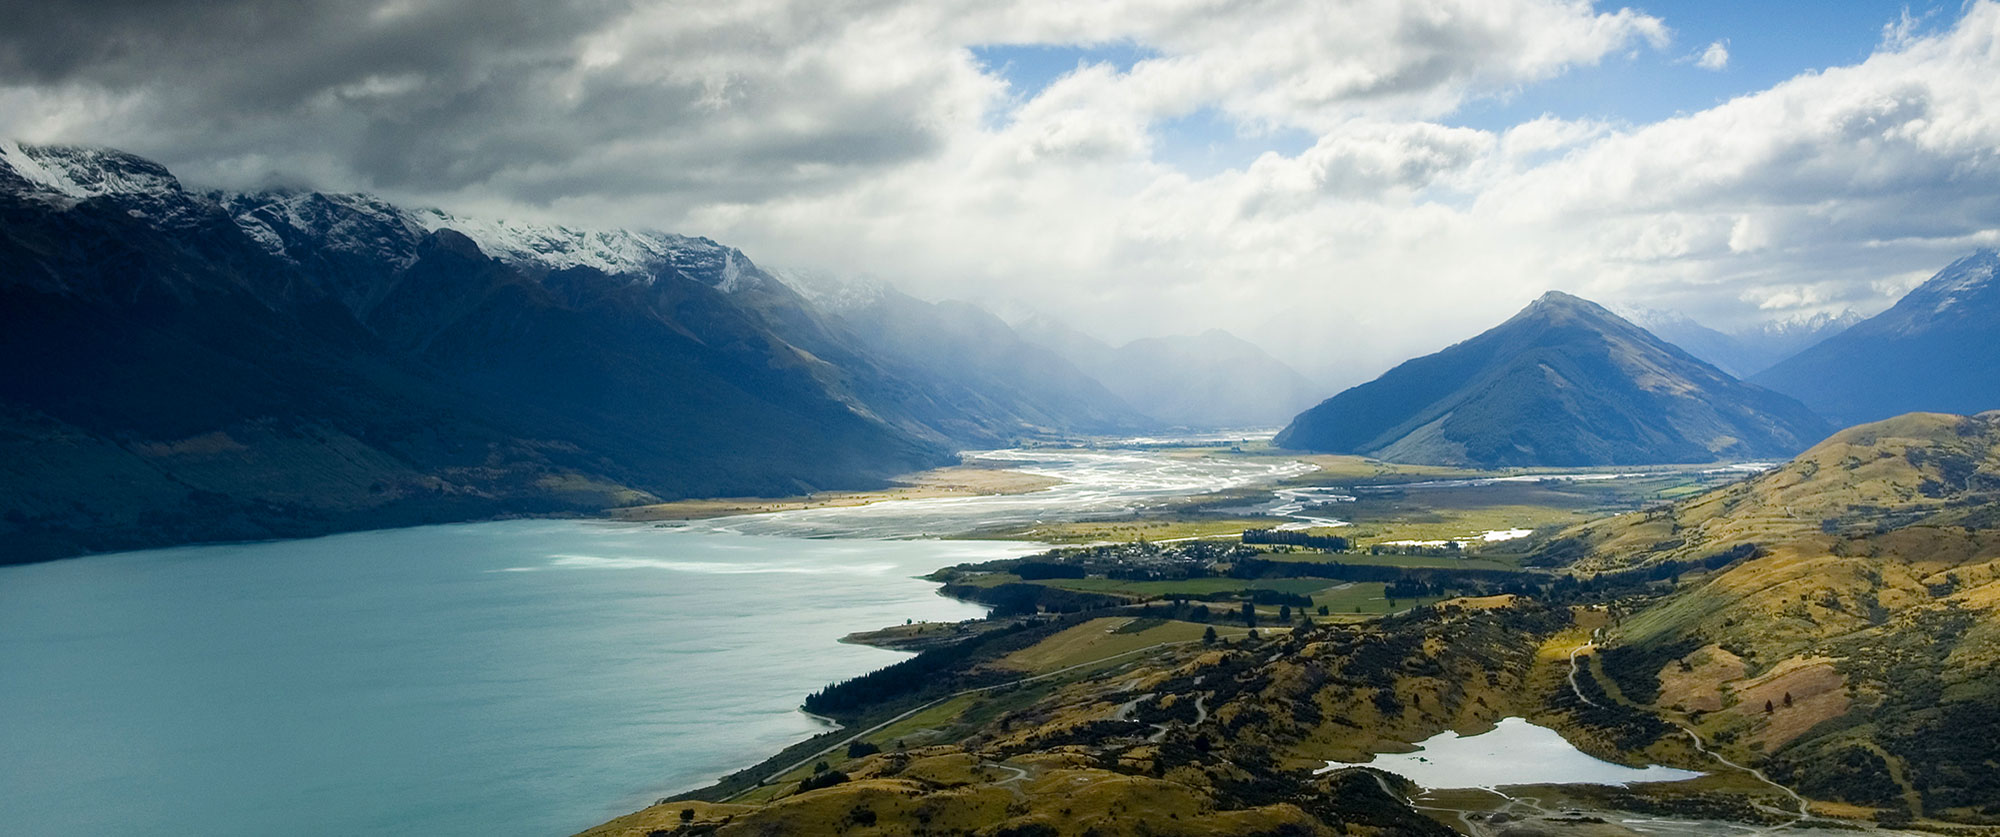 Best of New Zealand Luxury Vacations - Private Air Vacation